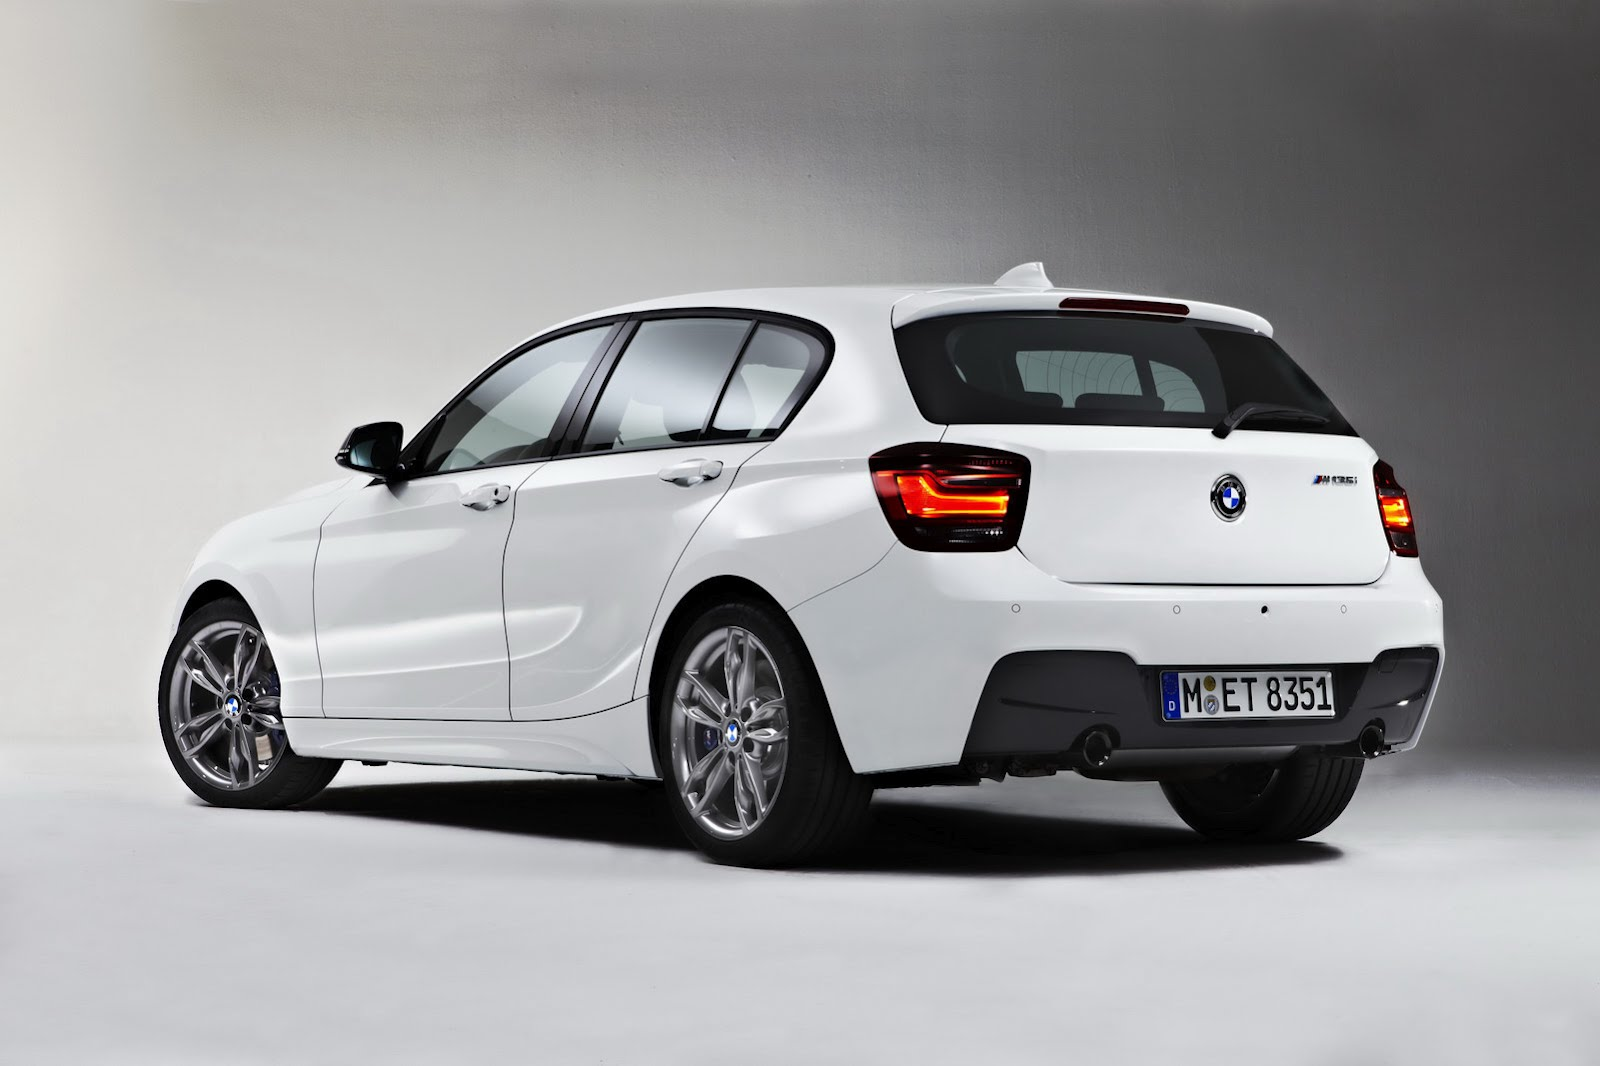 New BMW 114i with 1.6L Turbo and M135i Presented in Five Door Wallpapers Download